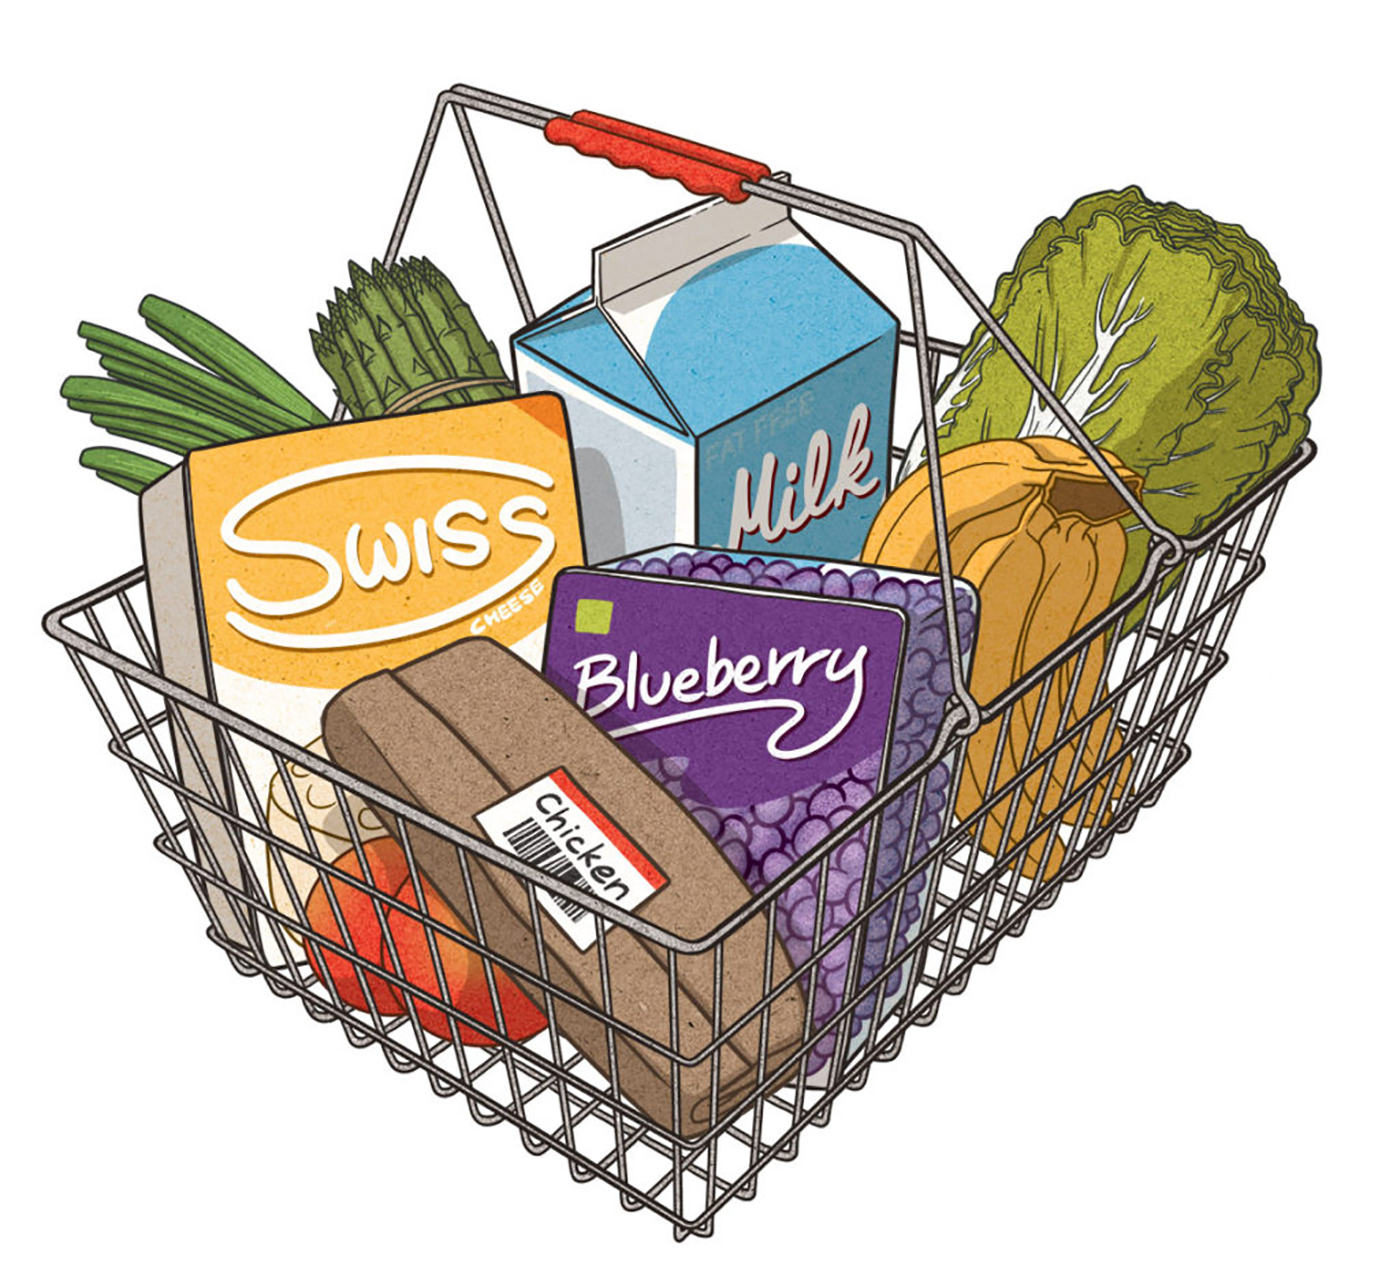 Richard Solomon - 24_Hand-held-grocery-basket-with-produce-1024x933